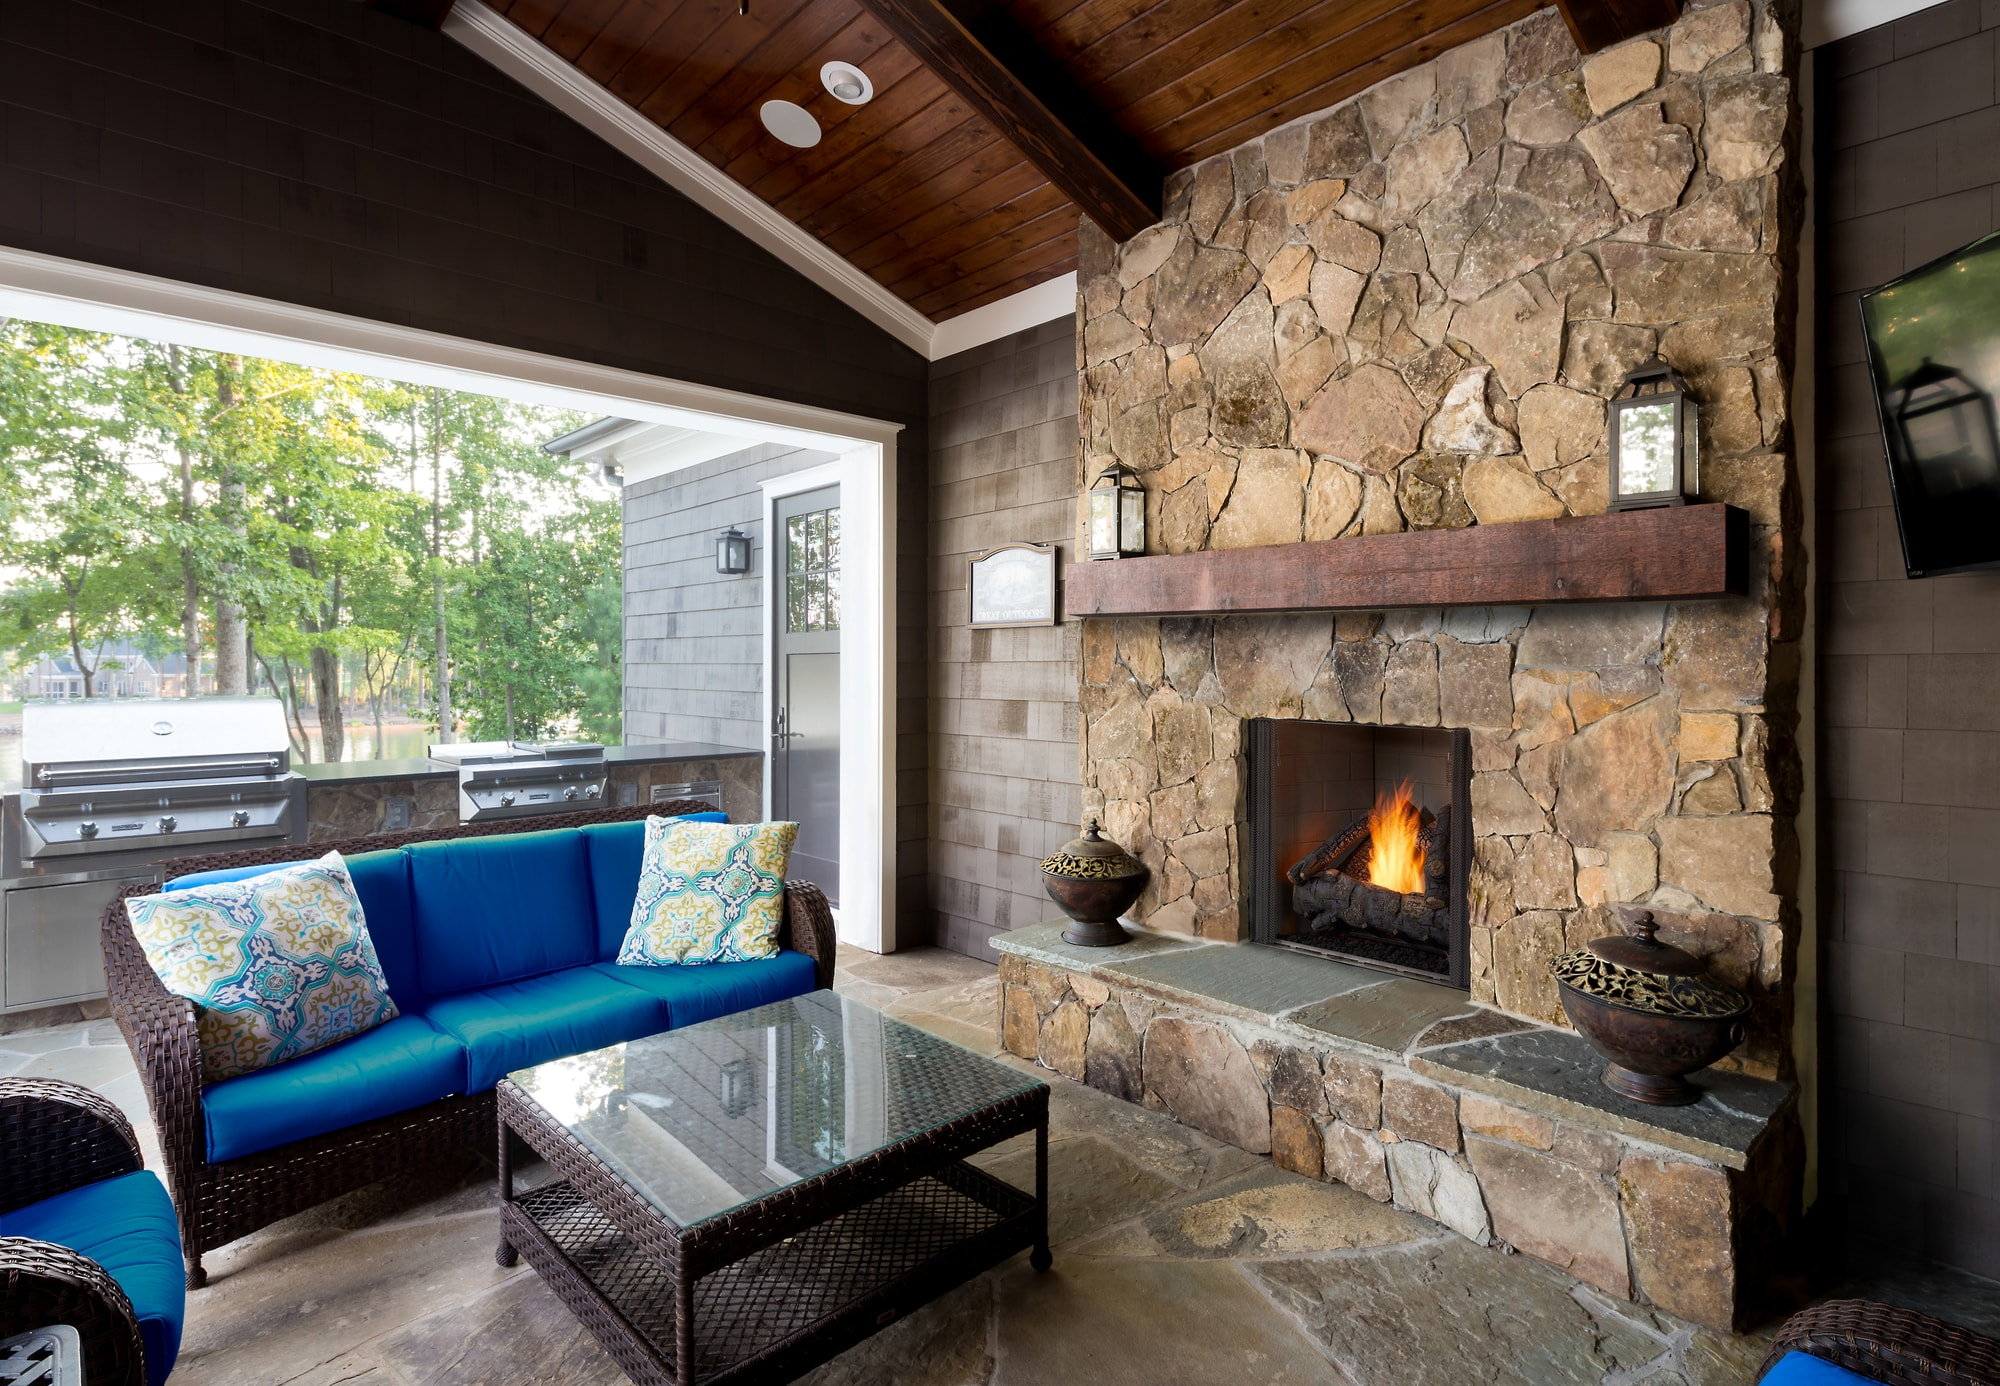 How To Maintain Your Outdoor Gas Fireplace Outdoor